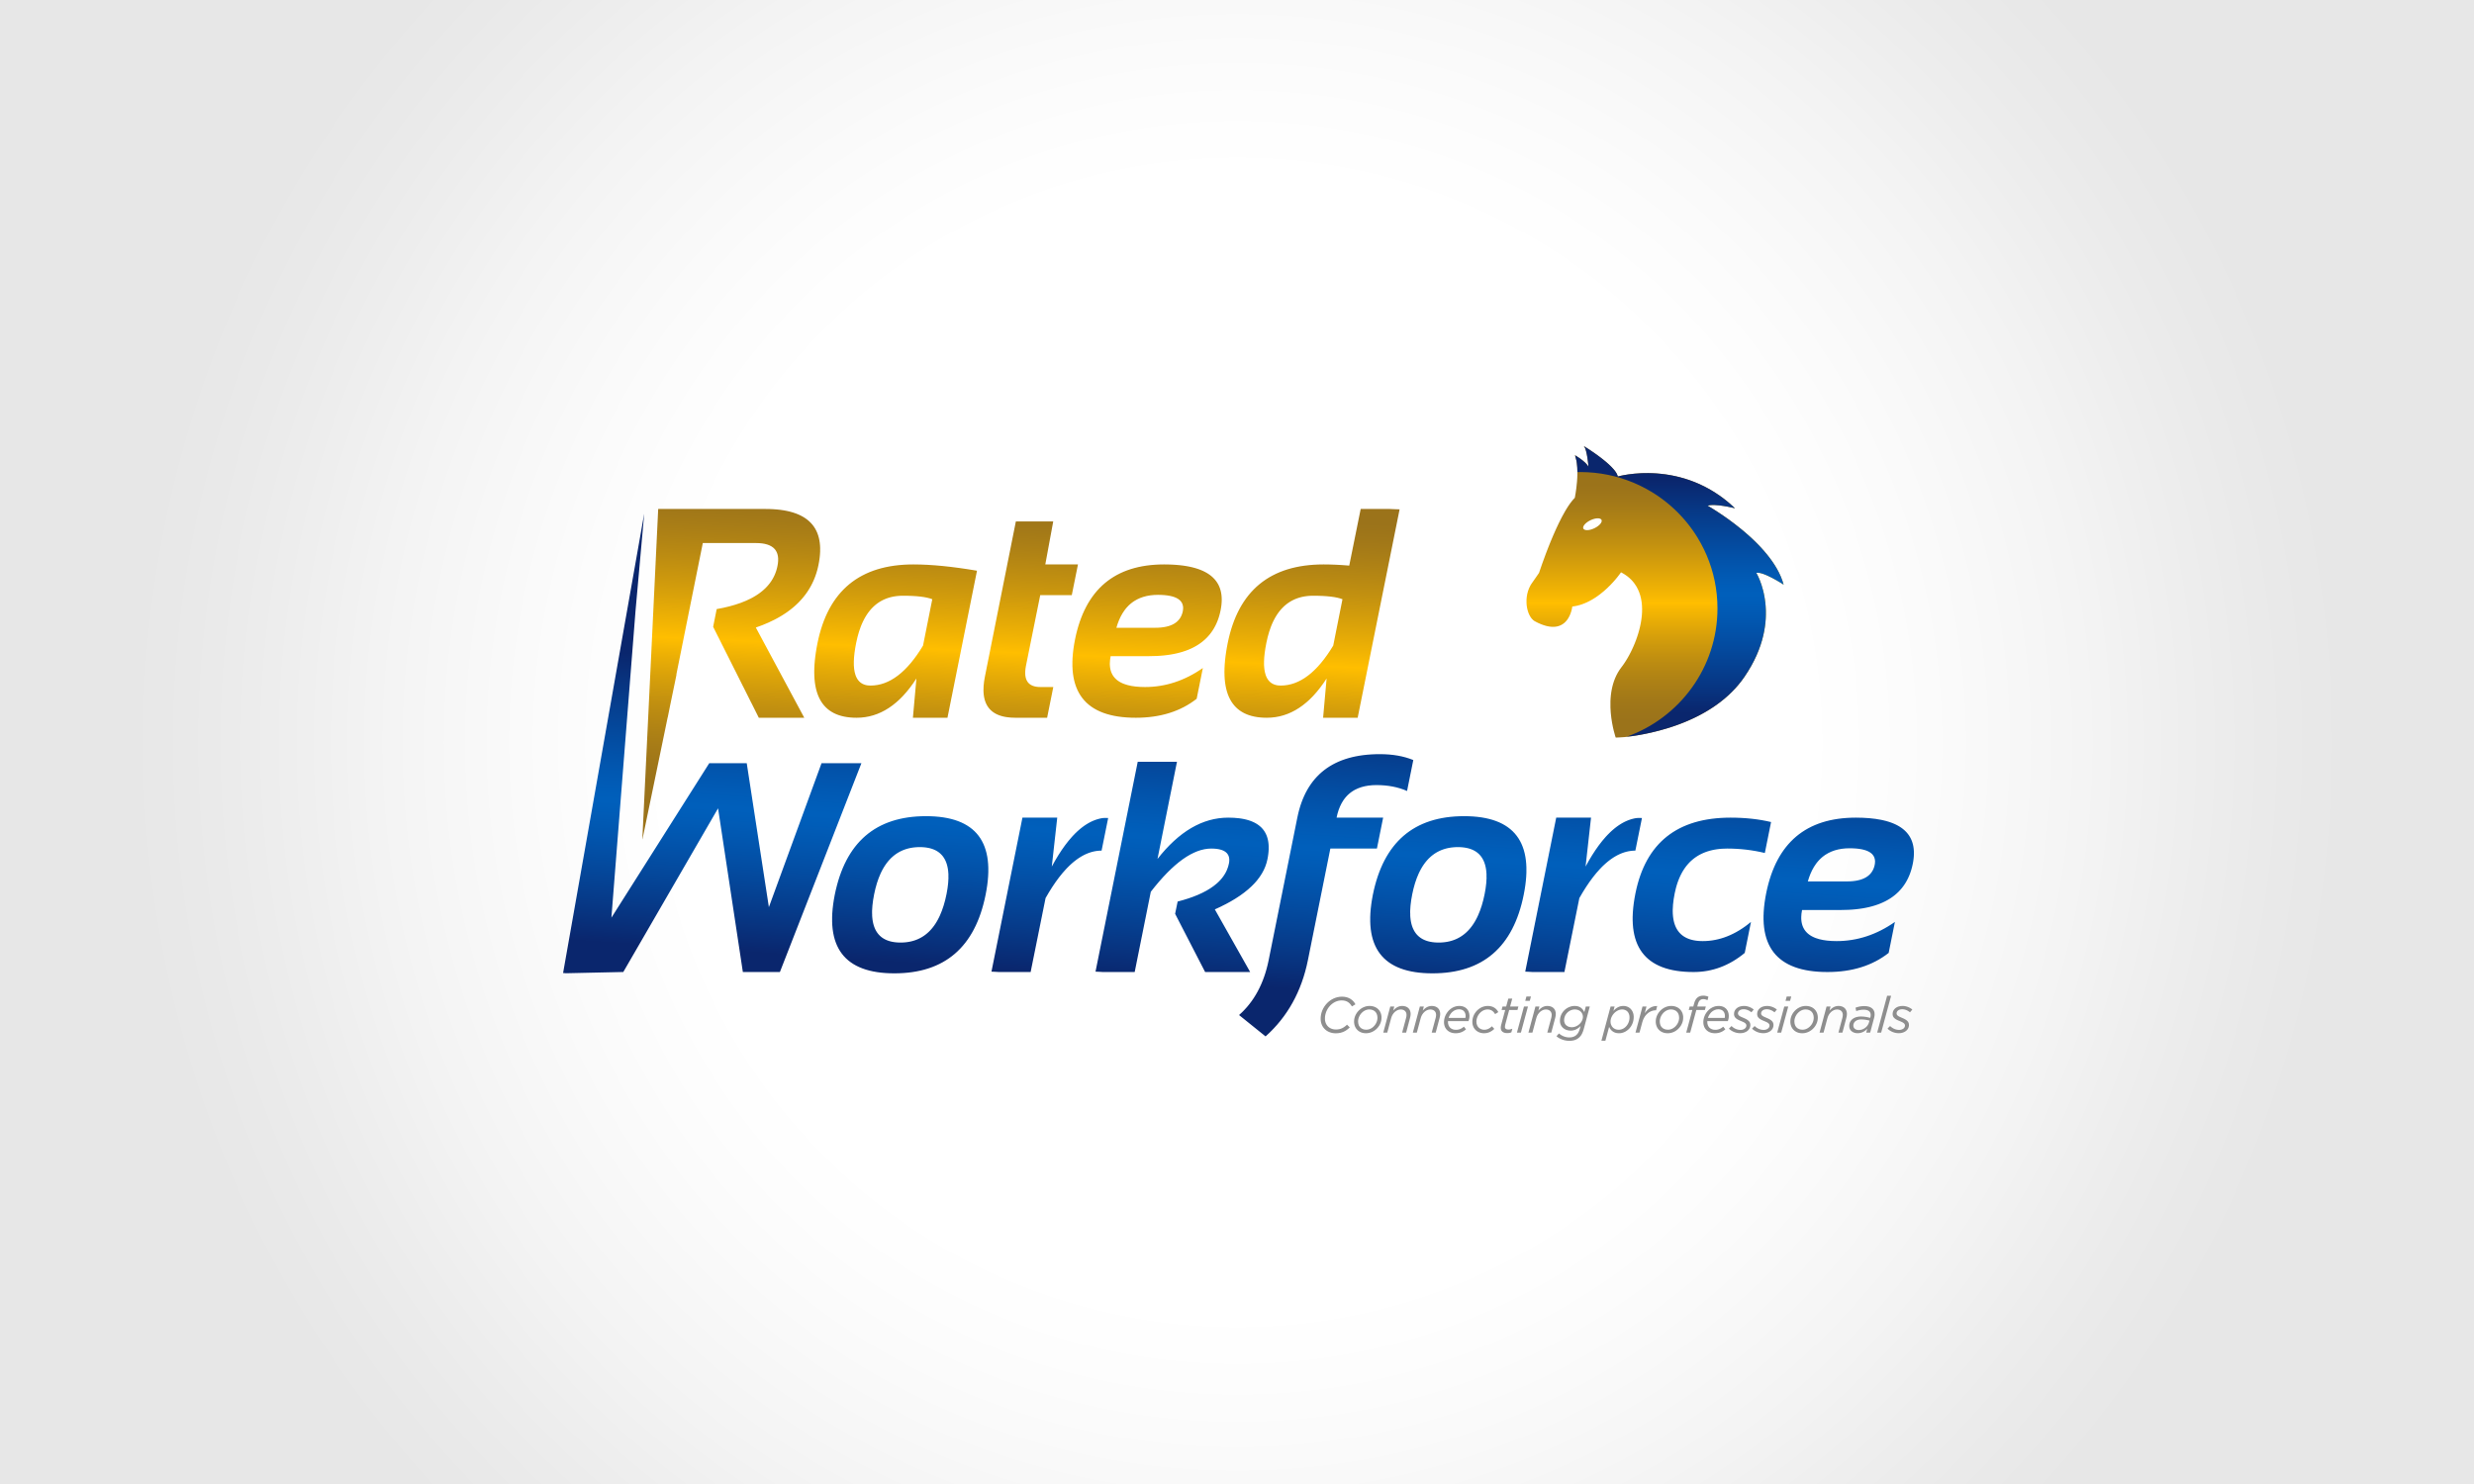 Rated workforce